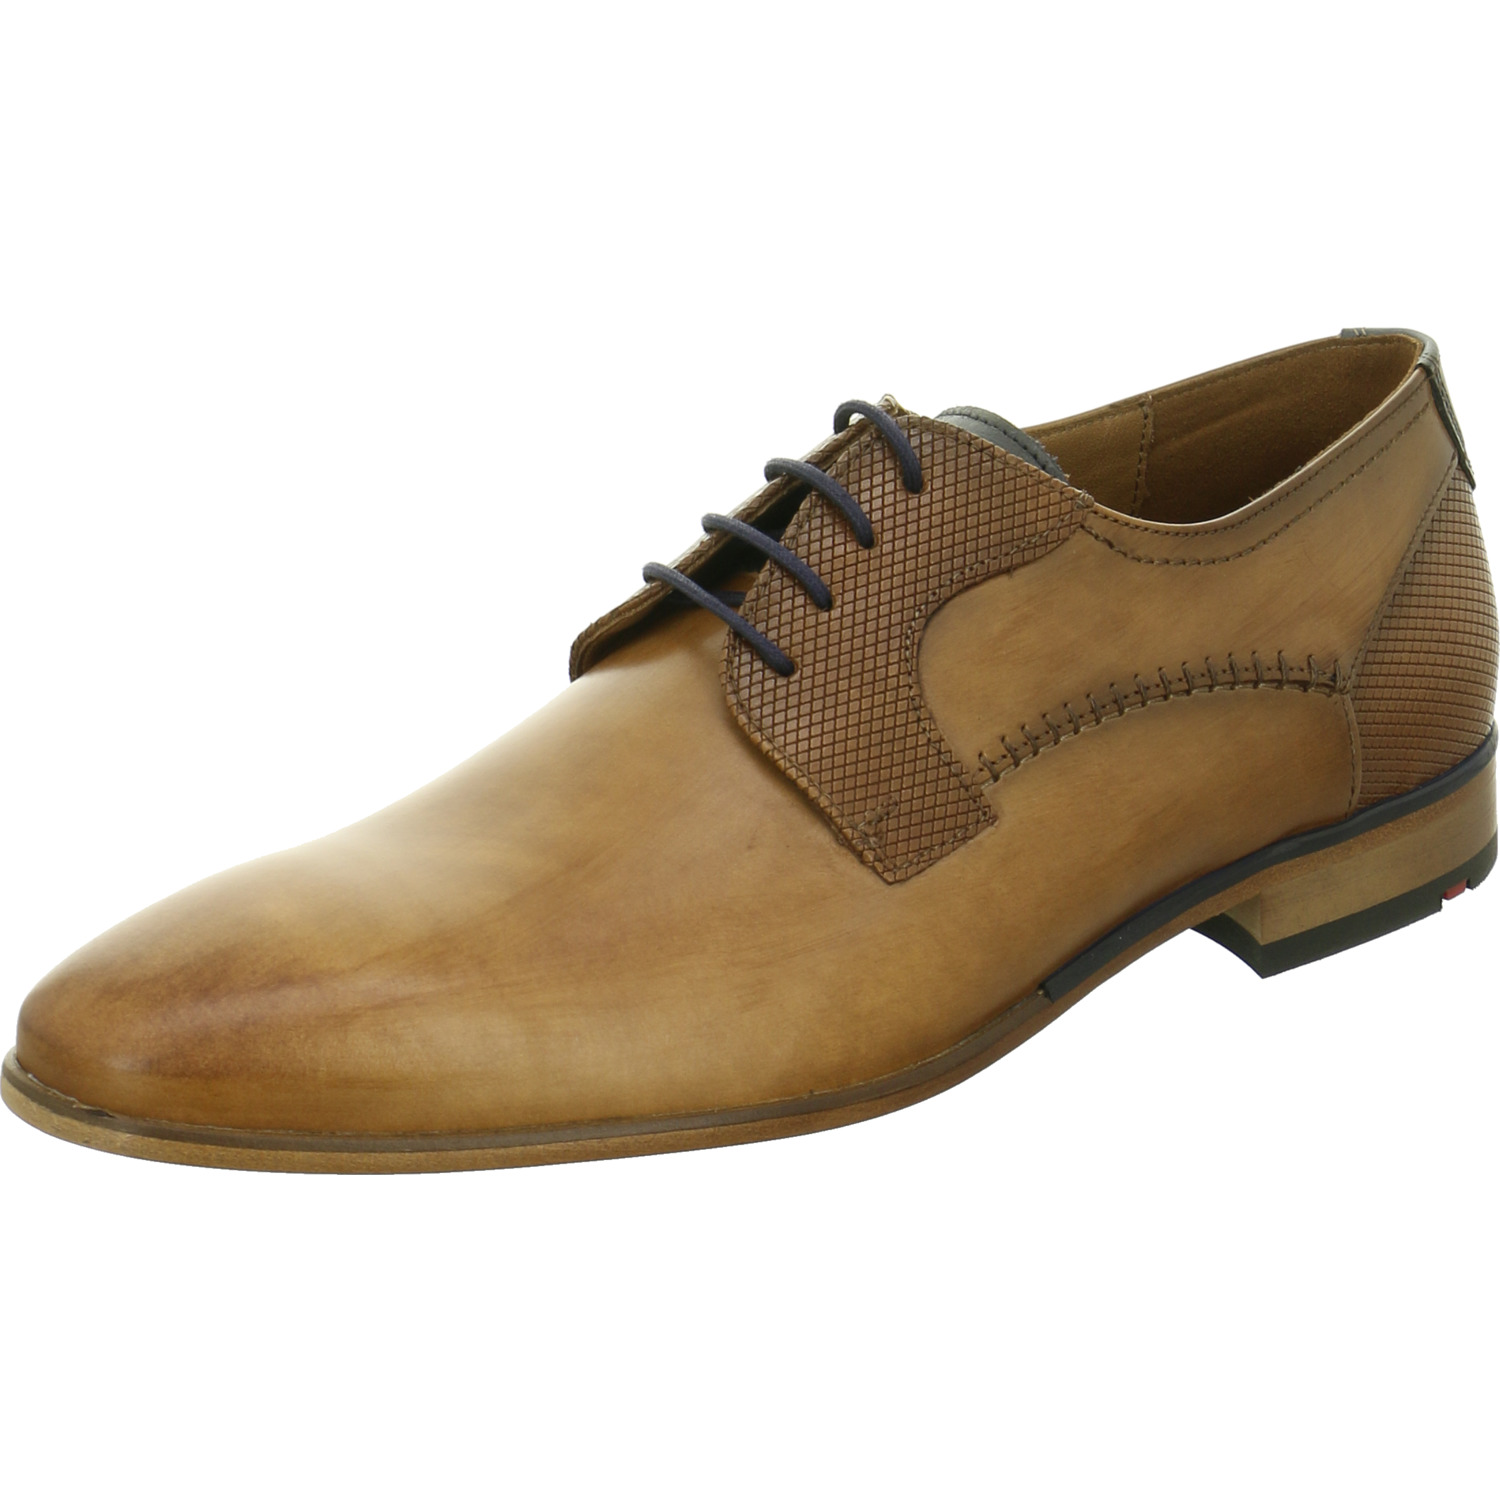 Herren Lloyd Business Schuhe braun Heath 44